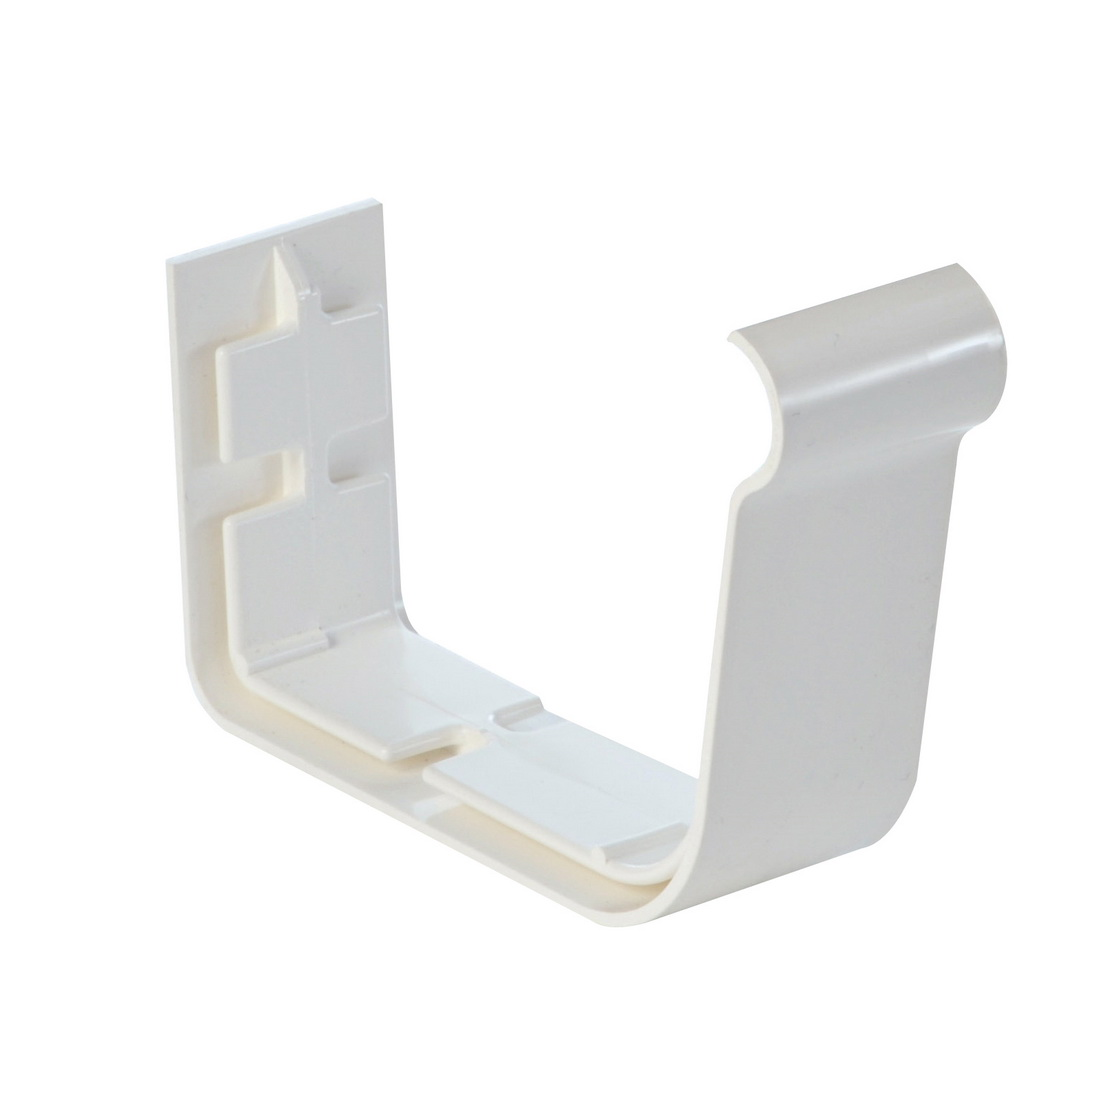 Marley Stormcold Gutter Spouting Joiner 90 x 30 x 30 mm Unplasticised PVC MS5